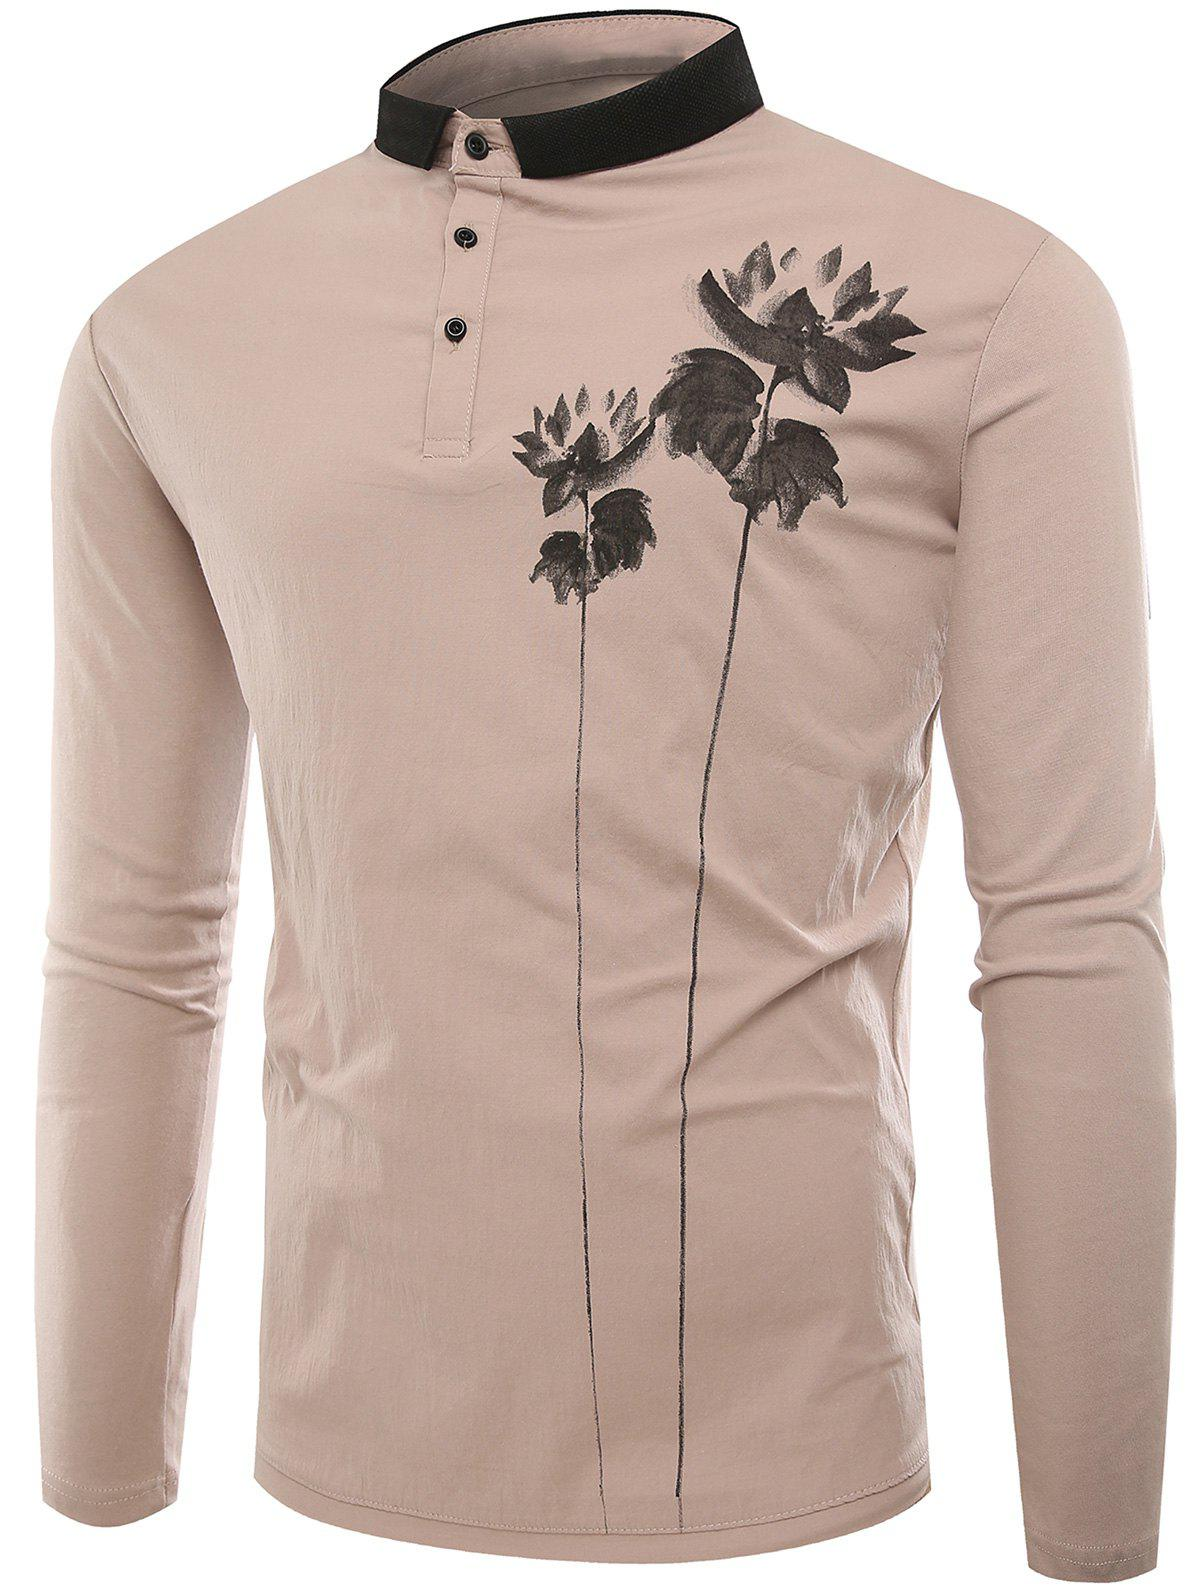 Latest Lotus Print Buttons Polo T-shirt